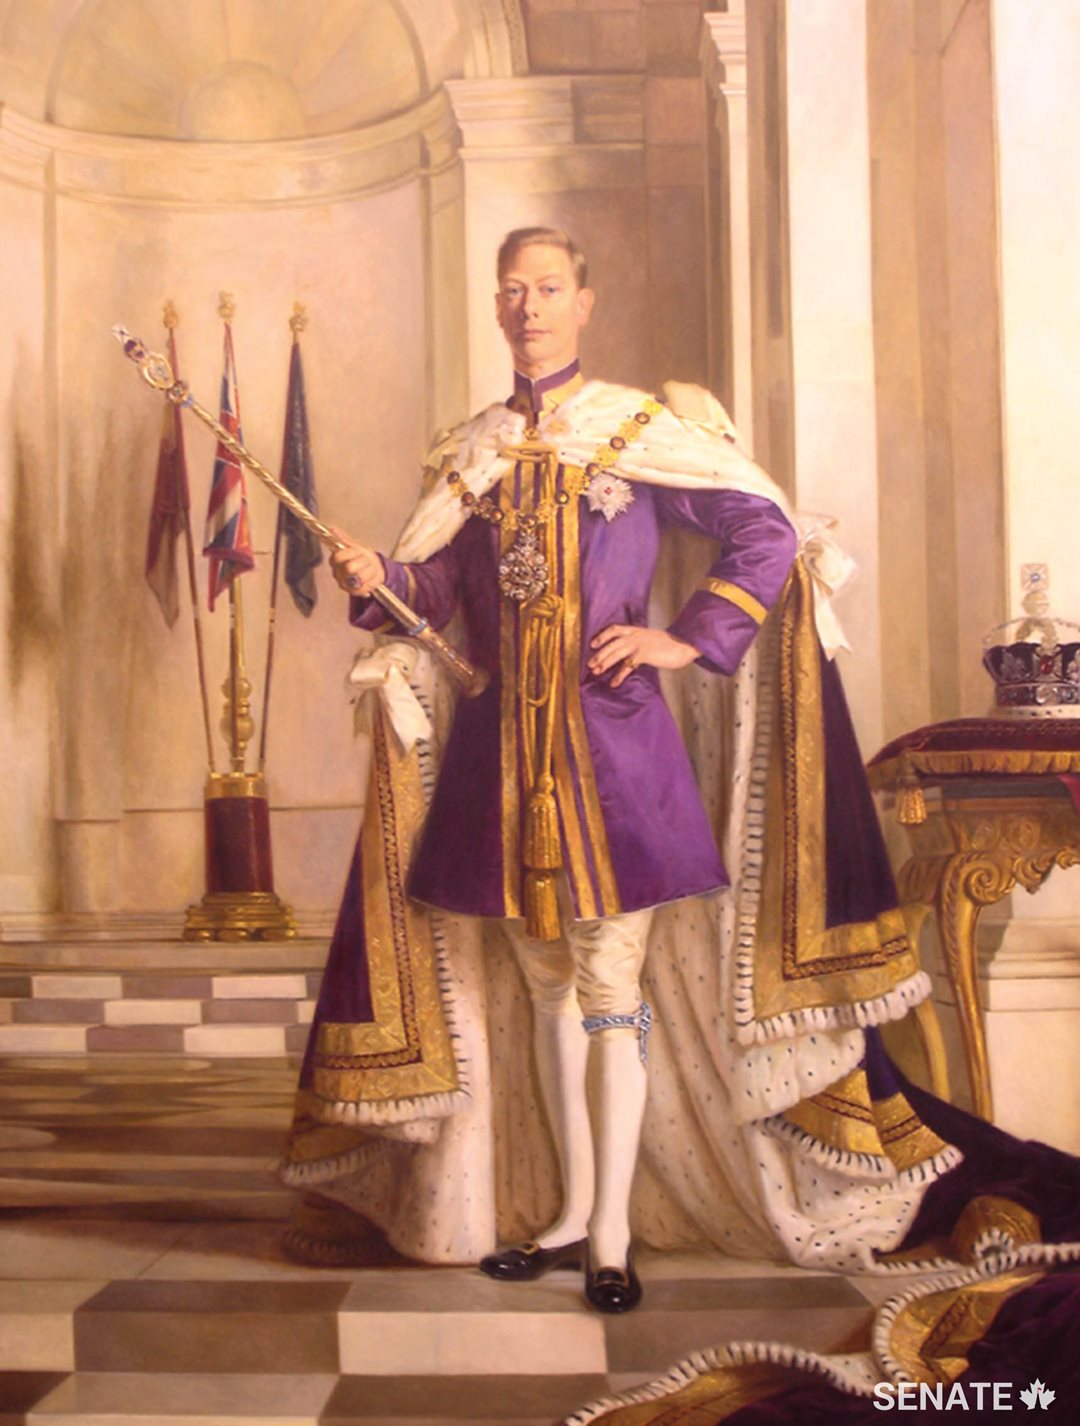 Robert Swain's portrait of King George VI depicts a quietly dignified king who presided over the creation of the Commonwealth of Nations as well as Newfoundland's entry into Confederation in 1949.